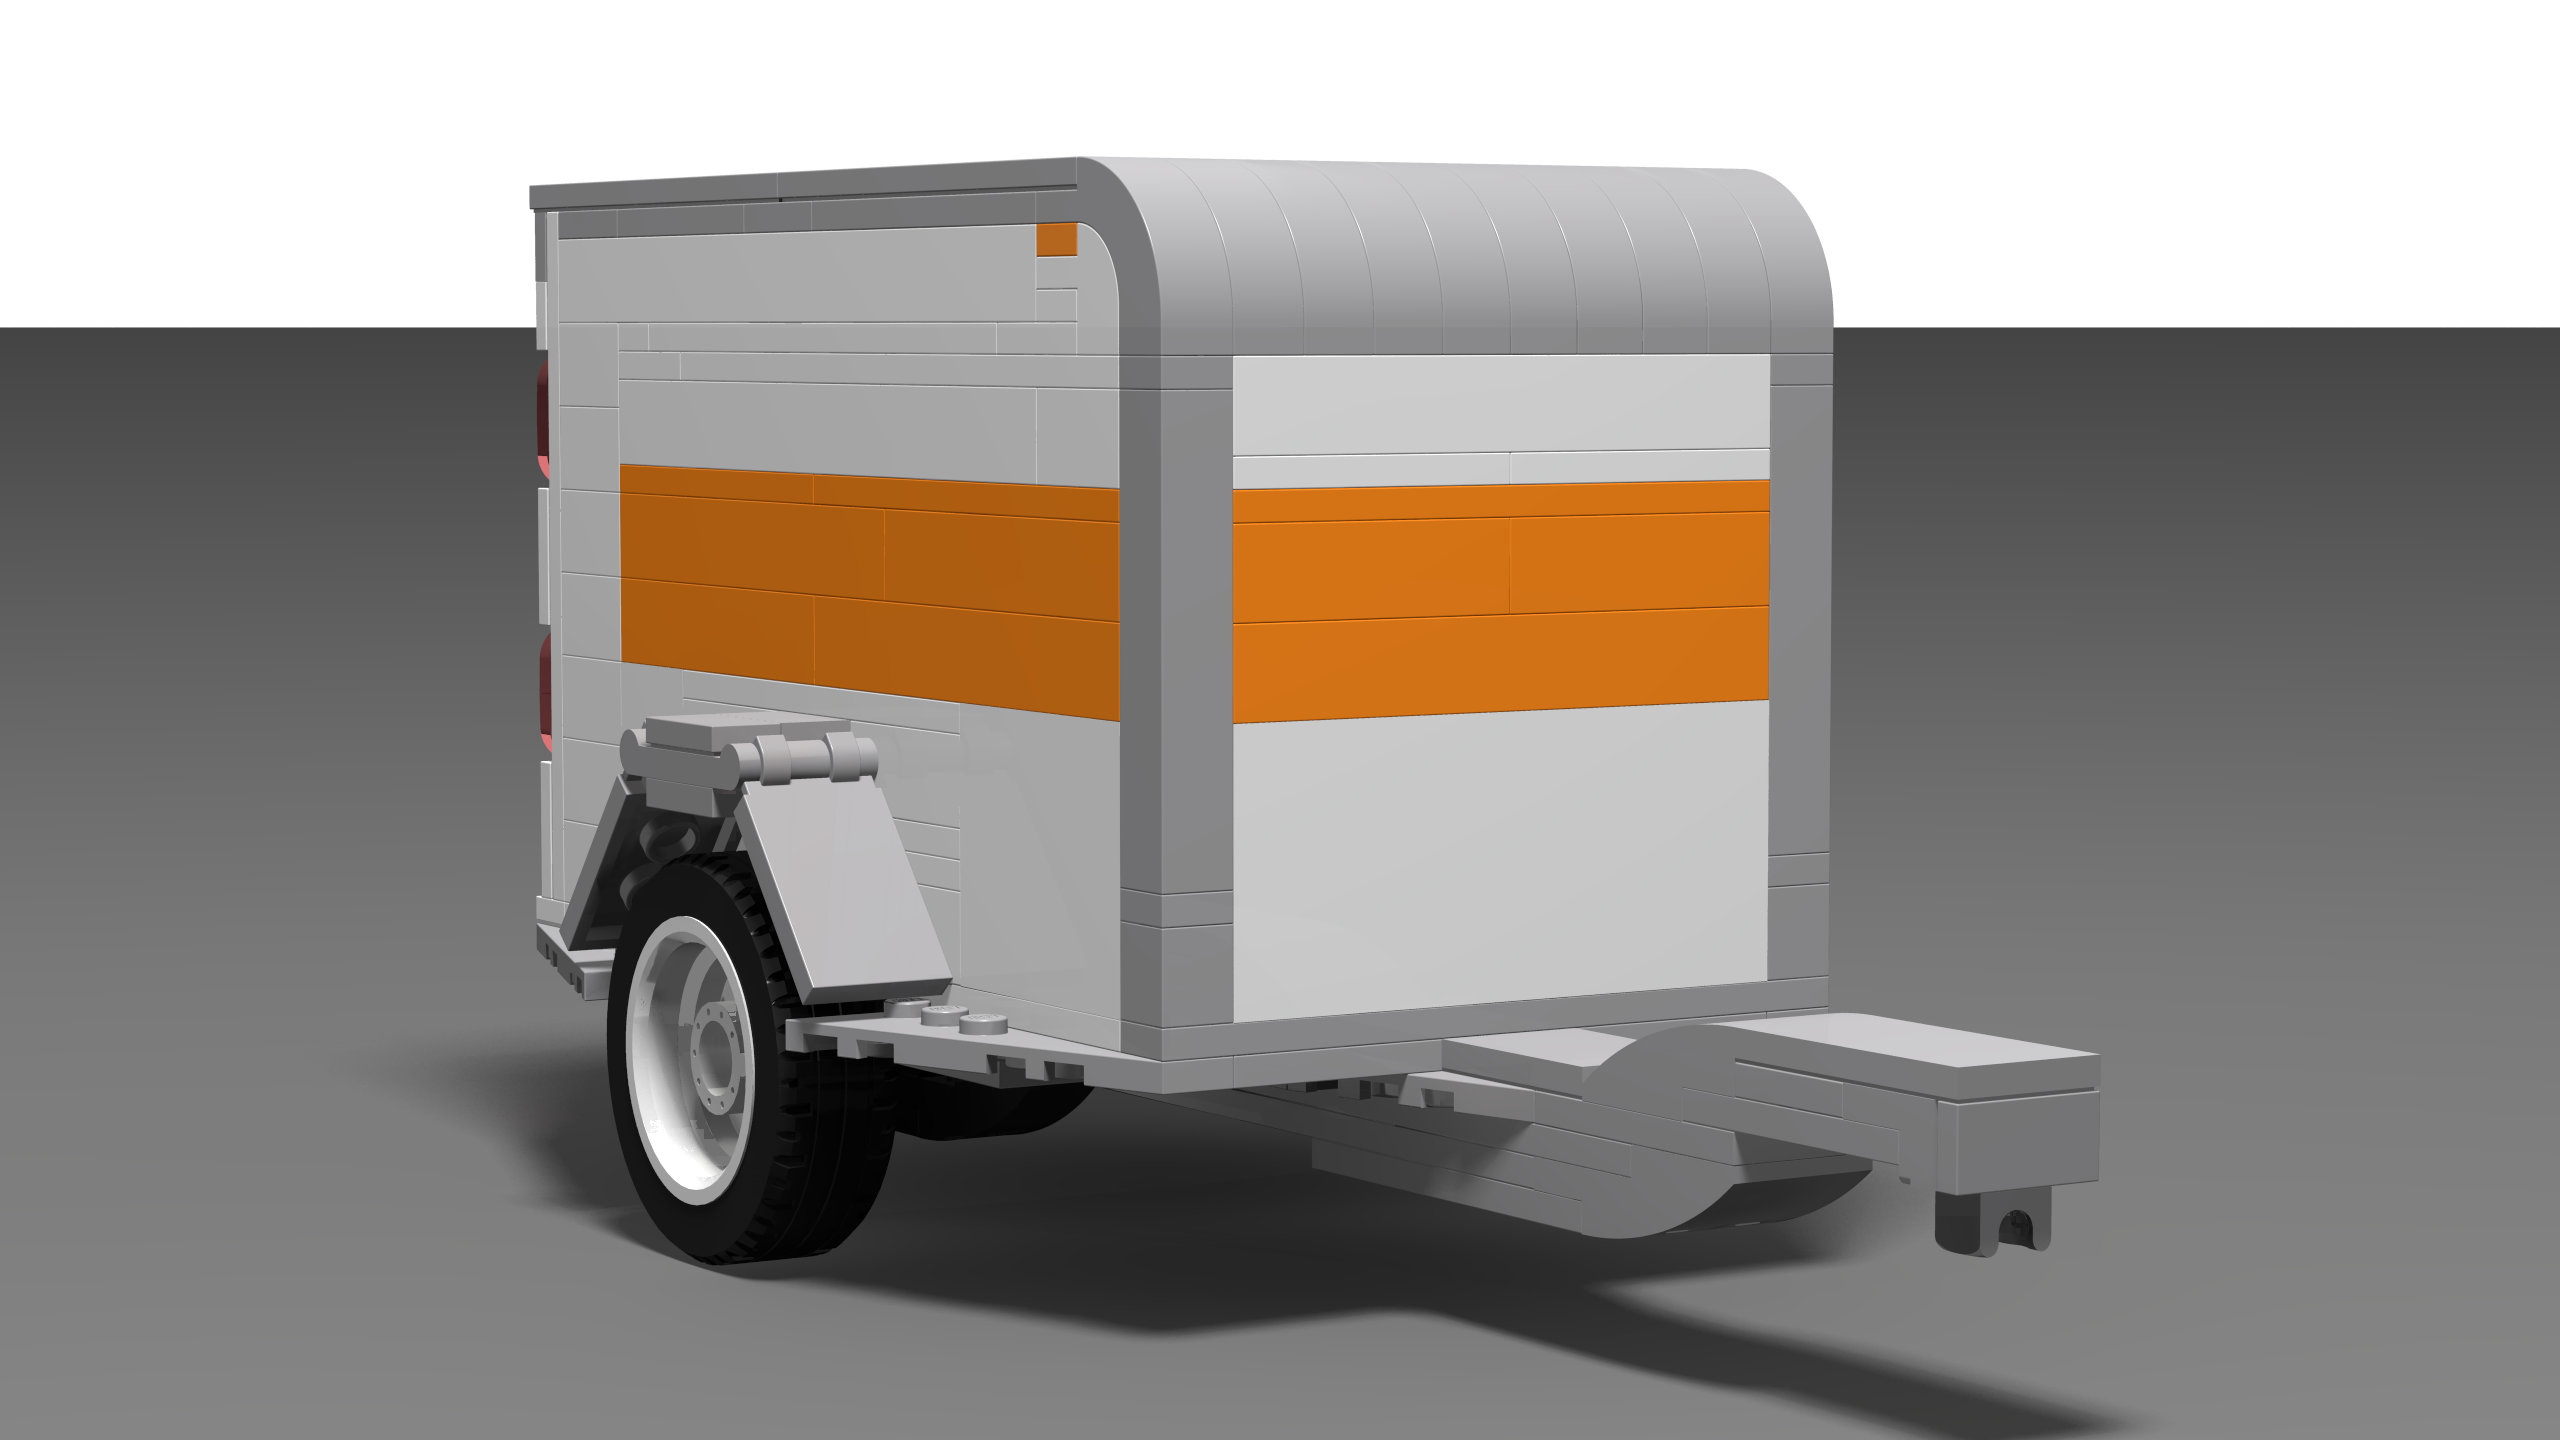 u-haul_trailer_mt_scale_4.jpg